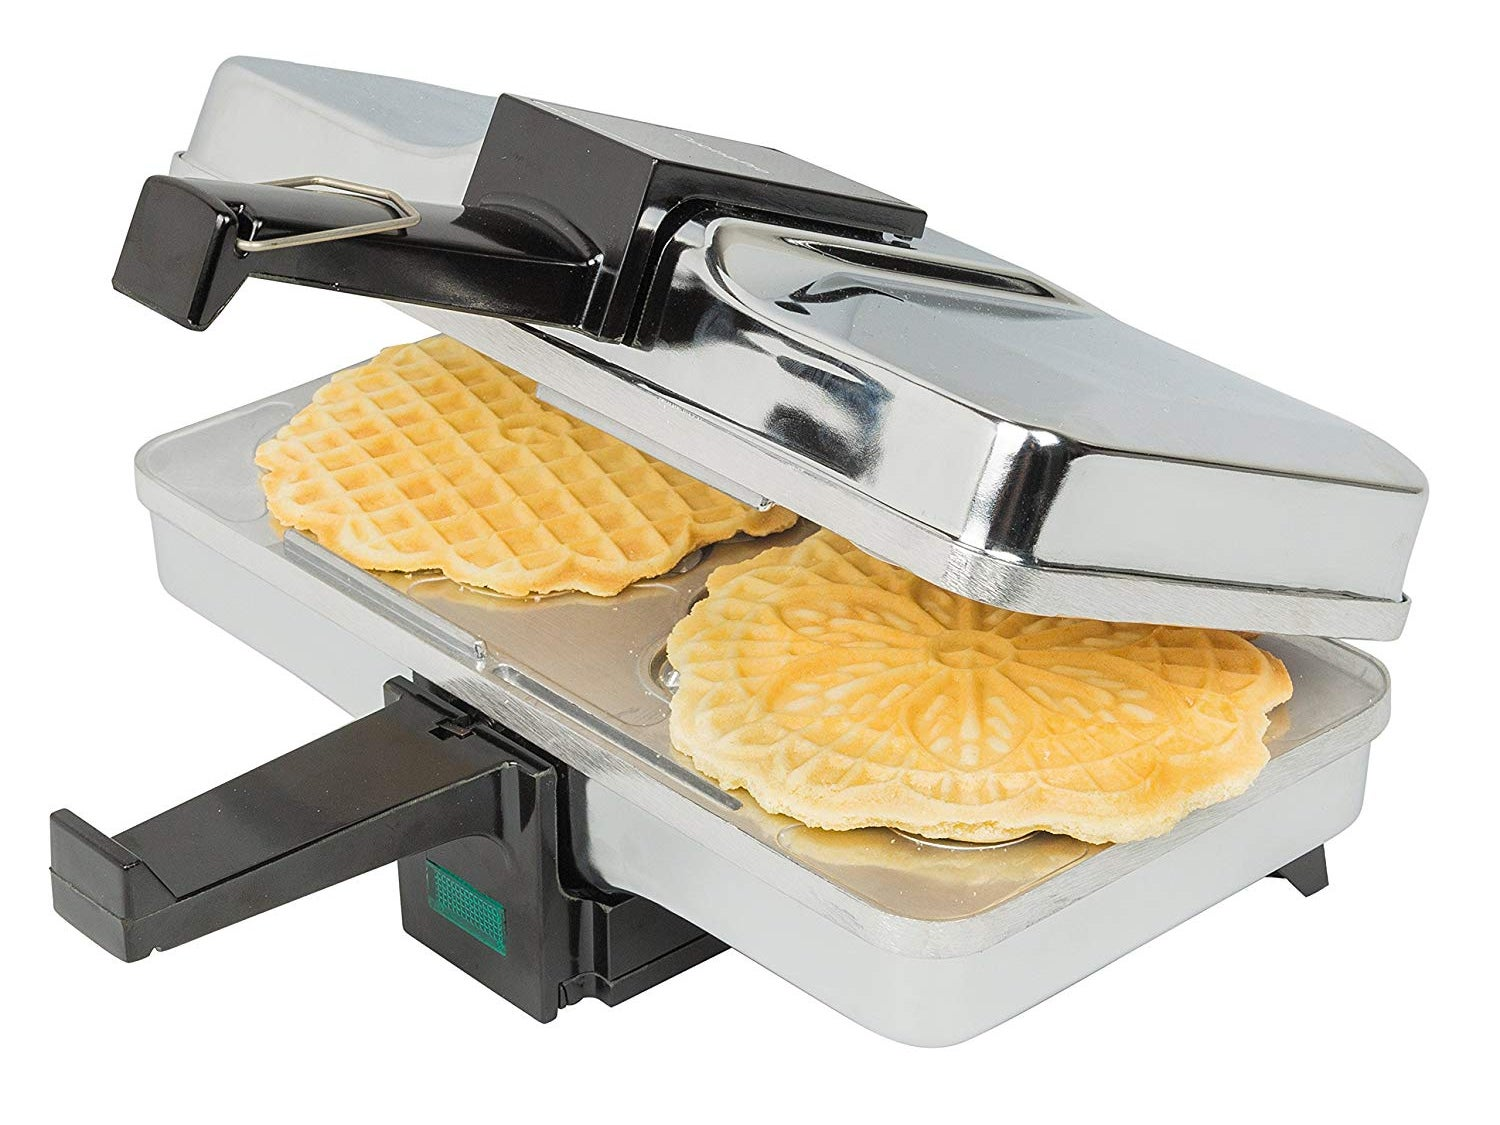 Pizzelle Maker- Polished Electric Pizzelle Baker Press Makes Two 5-Inch Cookies at Once- Recipes Included